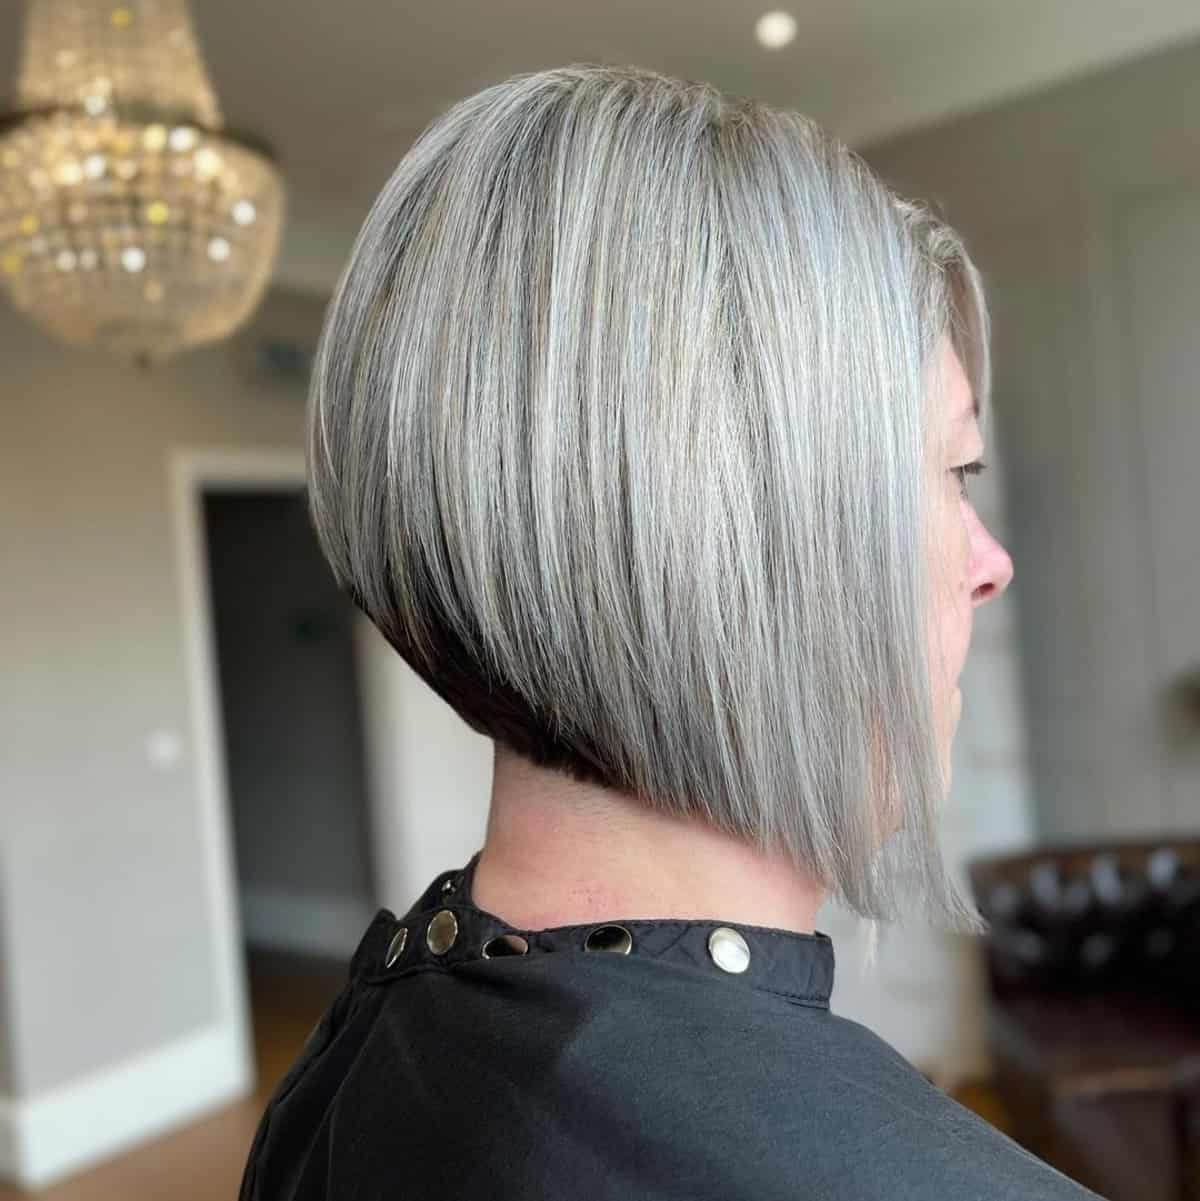 33 Youthful Hairstyles And Haircuts For Women Over 50 In 2021